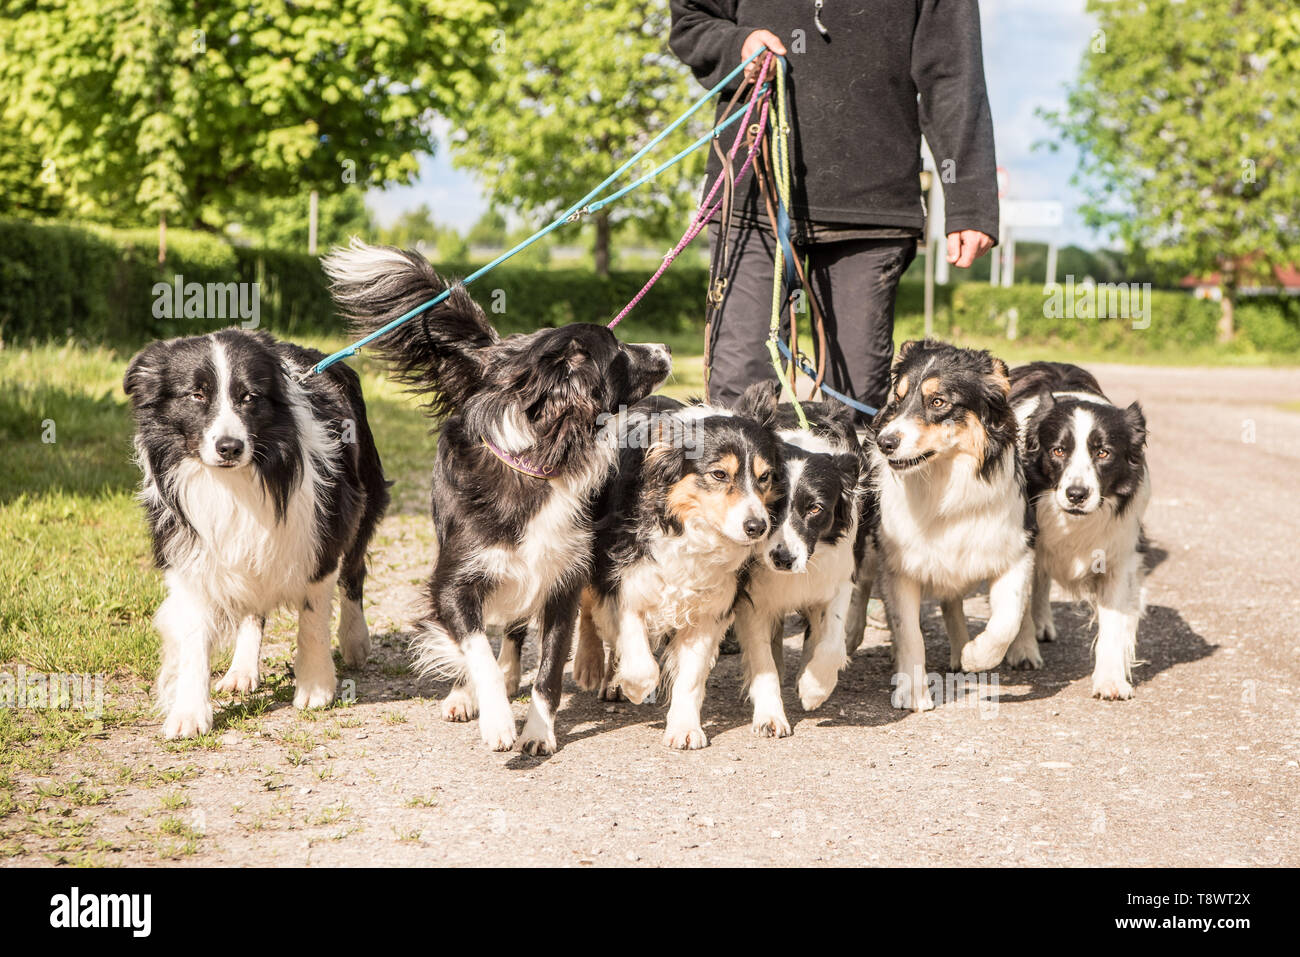 Woman walks with many dogs on a leash. A pack of obedient Boder Collie walk on a street with their owner. - Stock Image